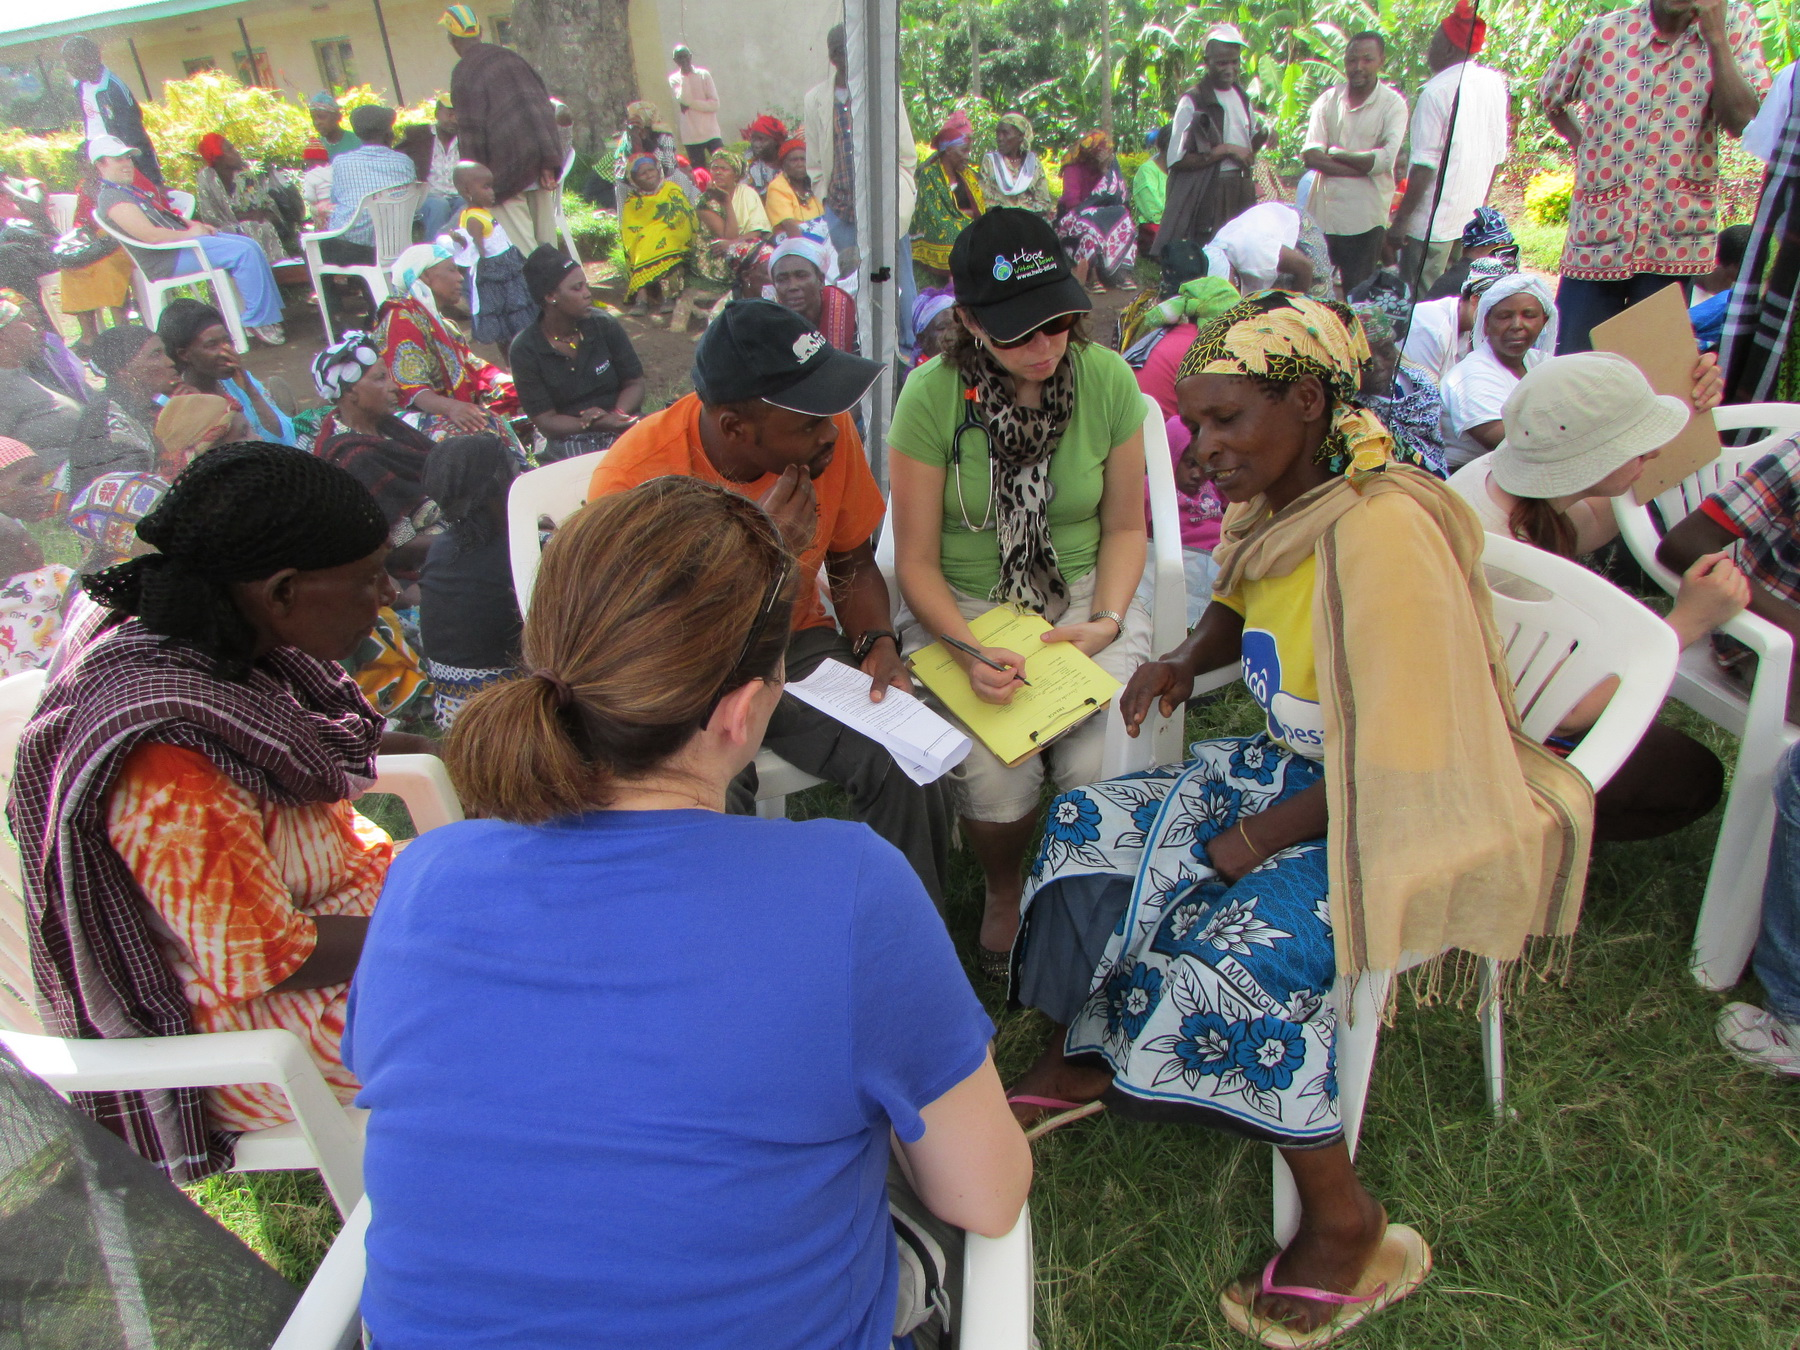 Treating patients at the Medical Camp in Marangu, Tanzania 2013